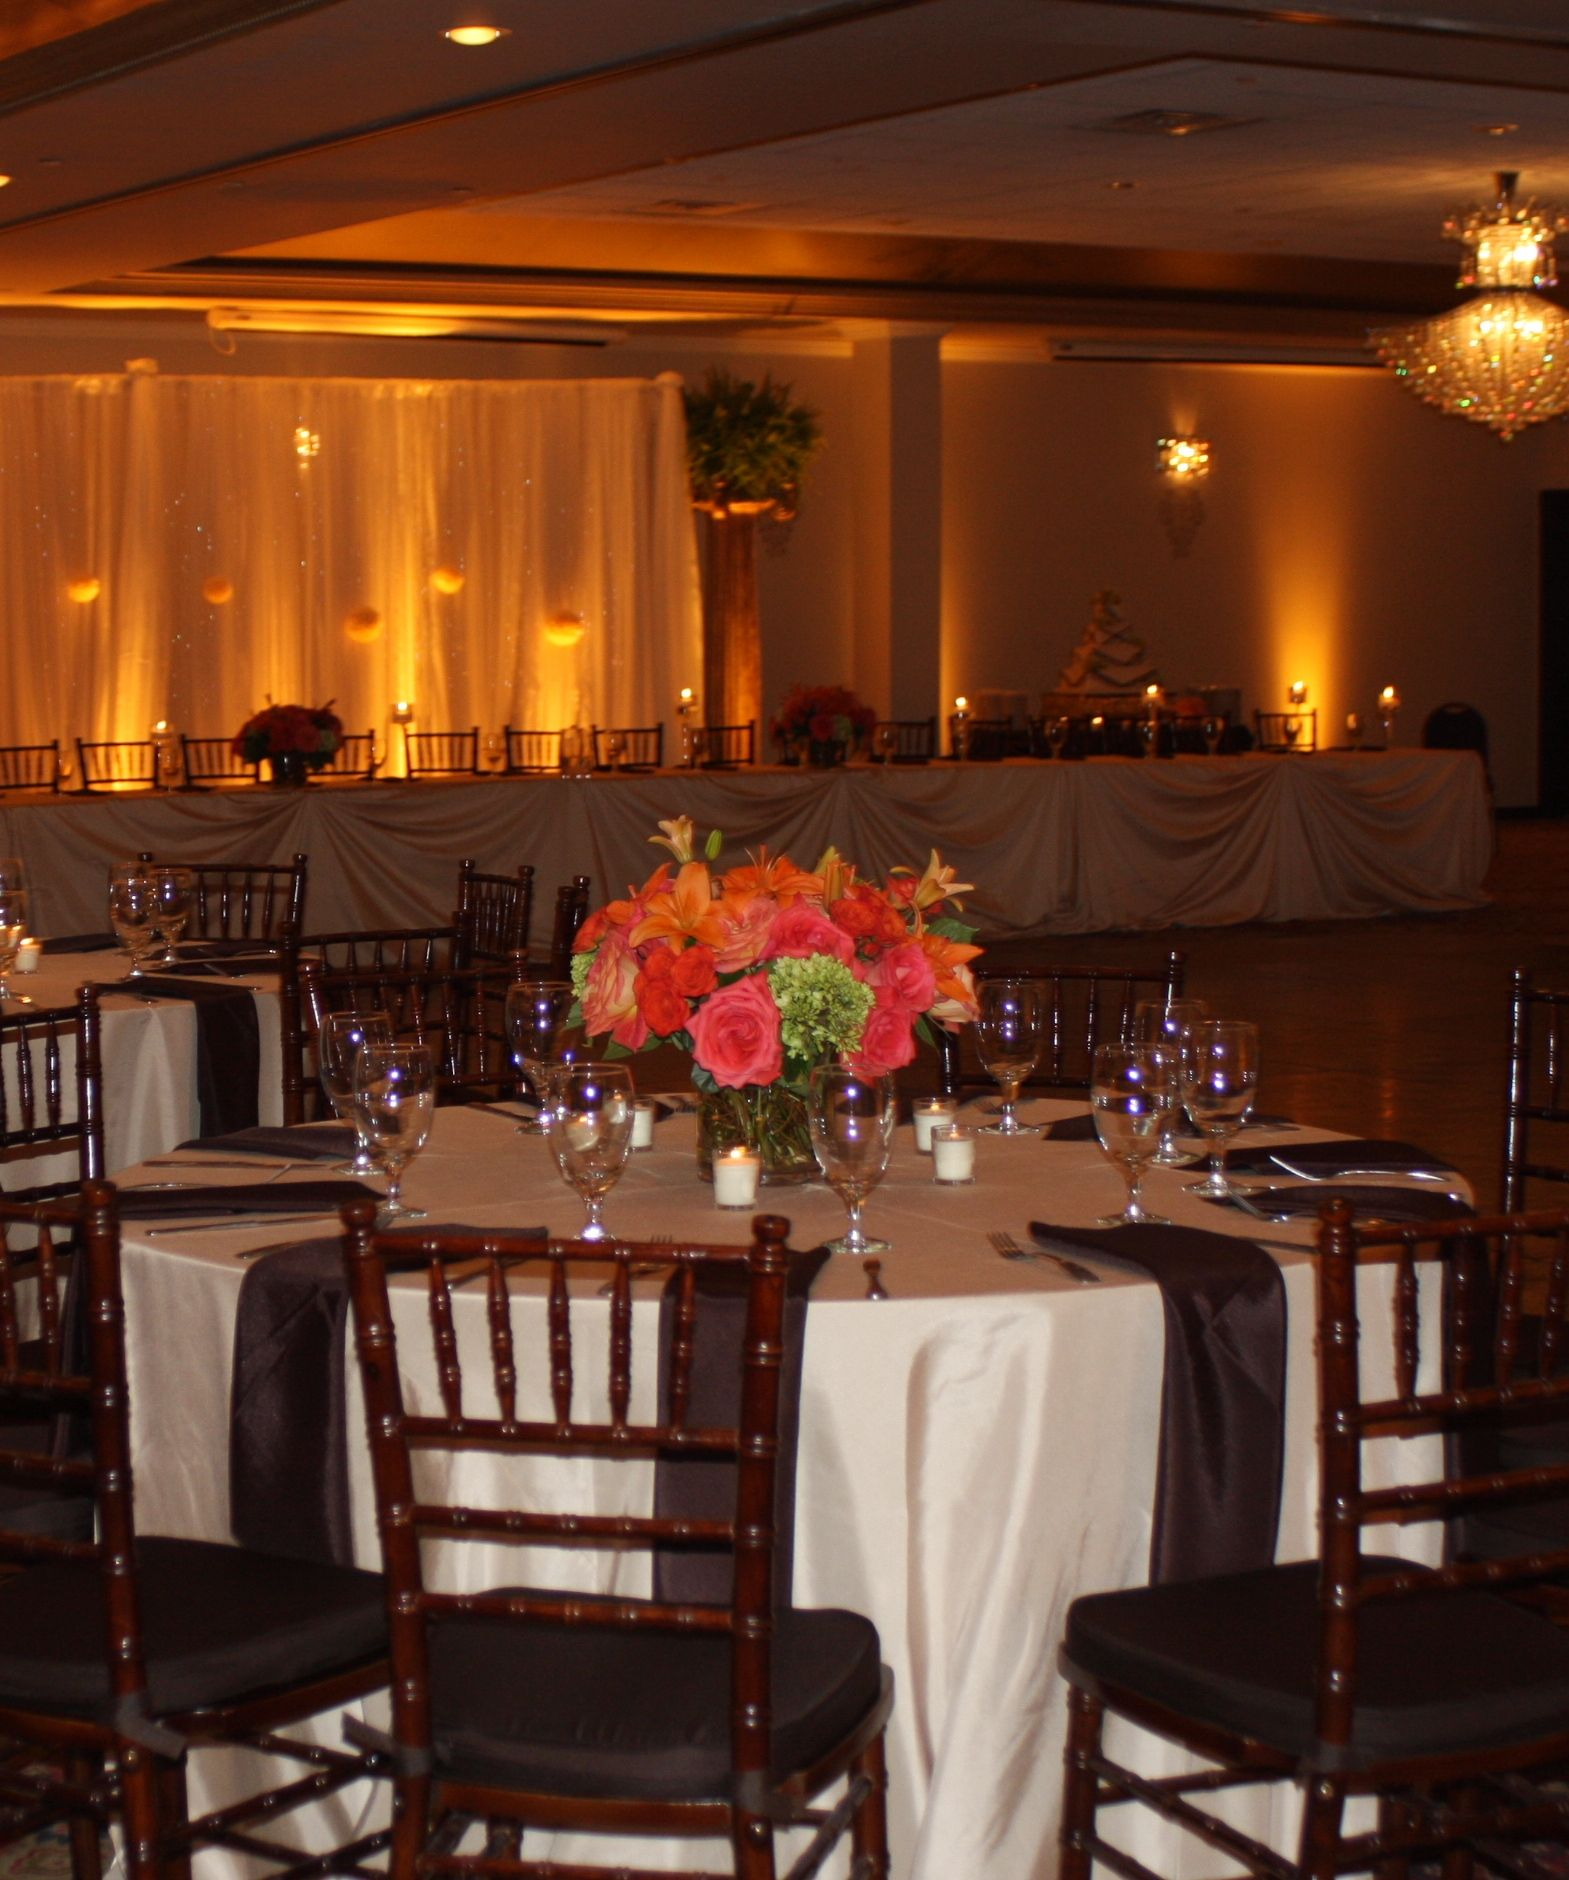 Pelazzio Full Service Wedding Venue Can Help Create The